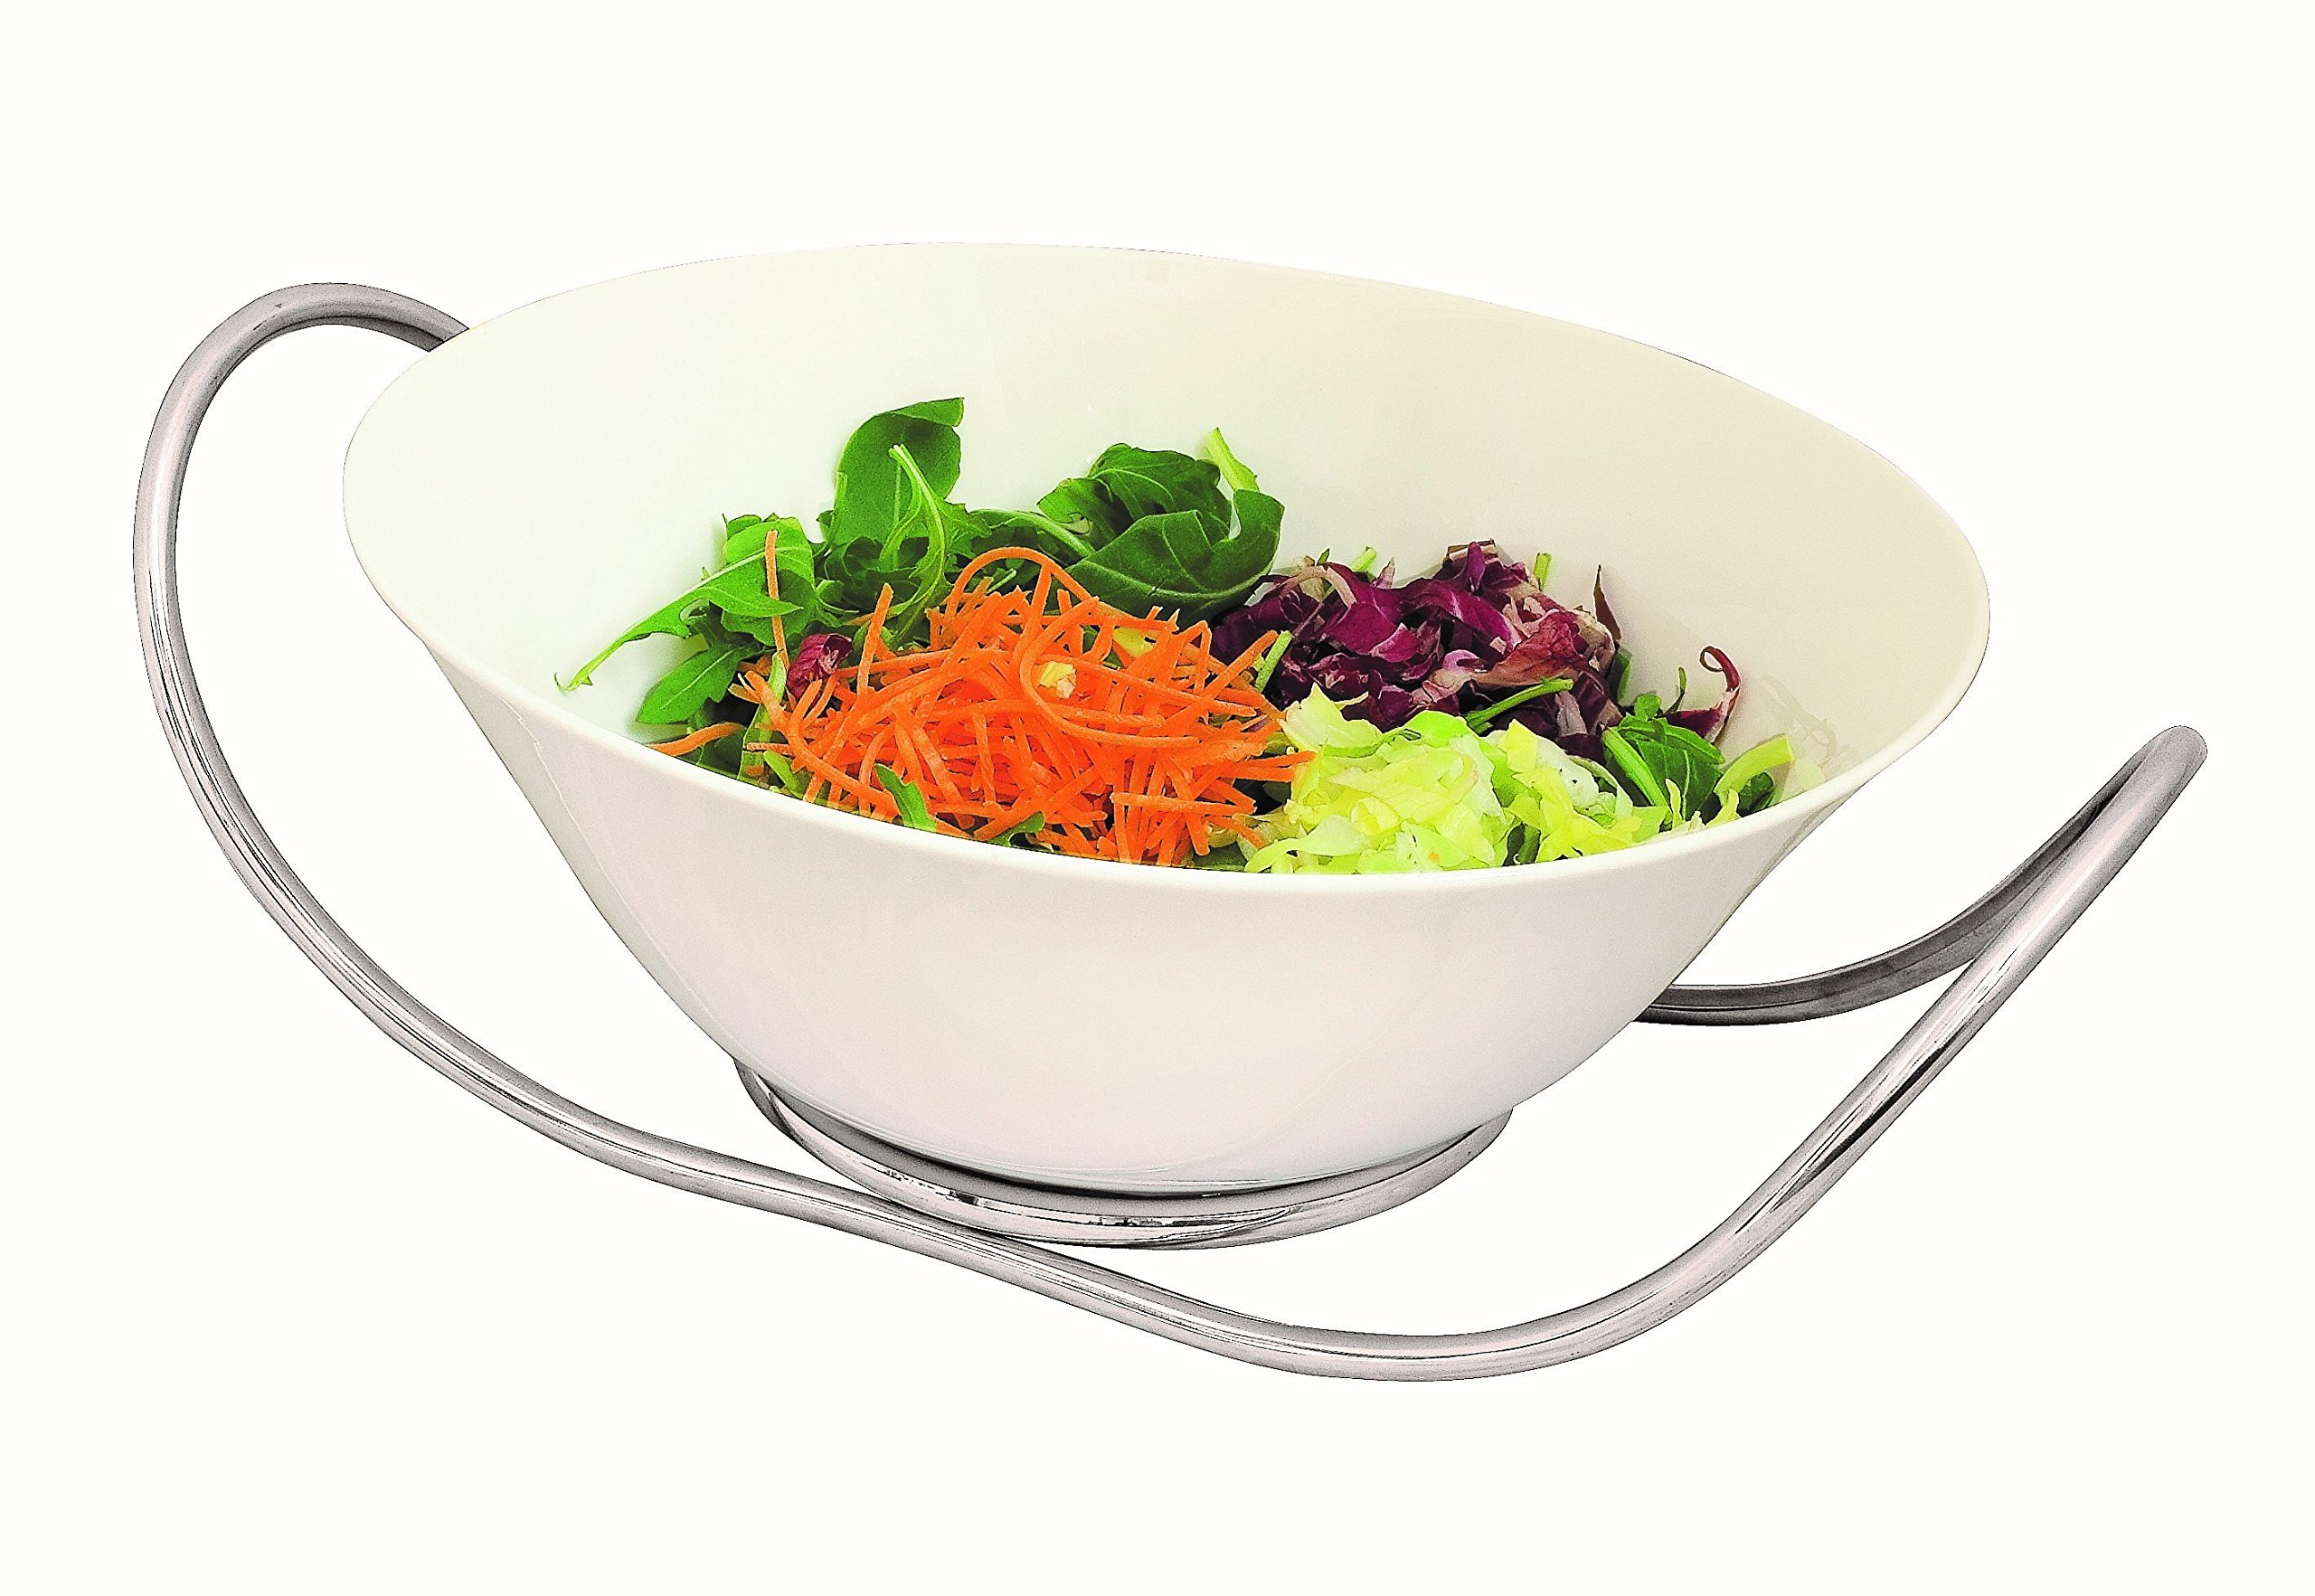 Mepra Due Ice Fine China Salad Bowl with Stand, 28cm